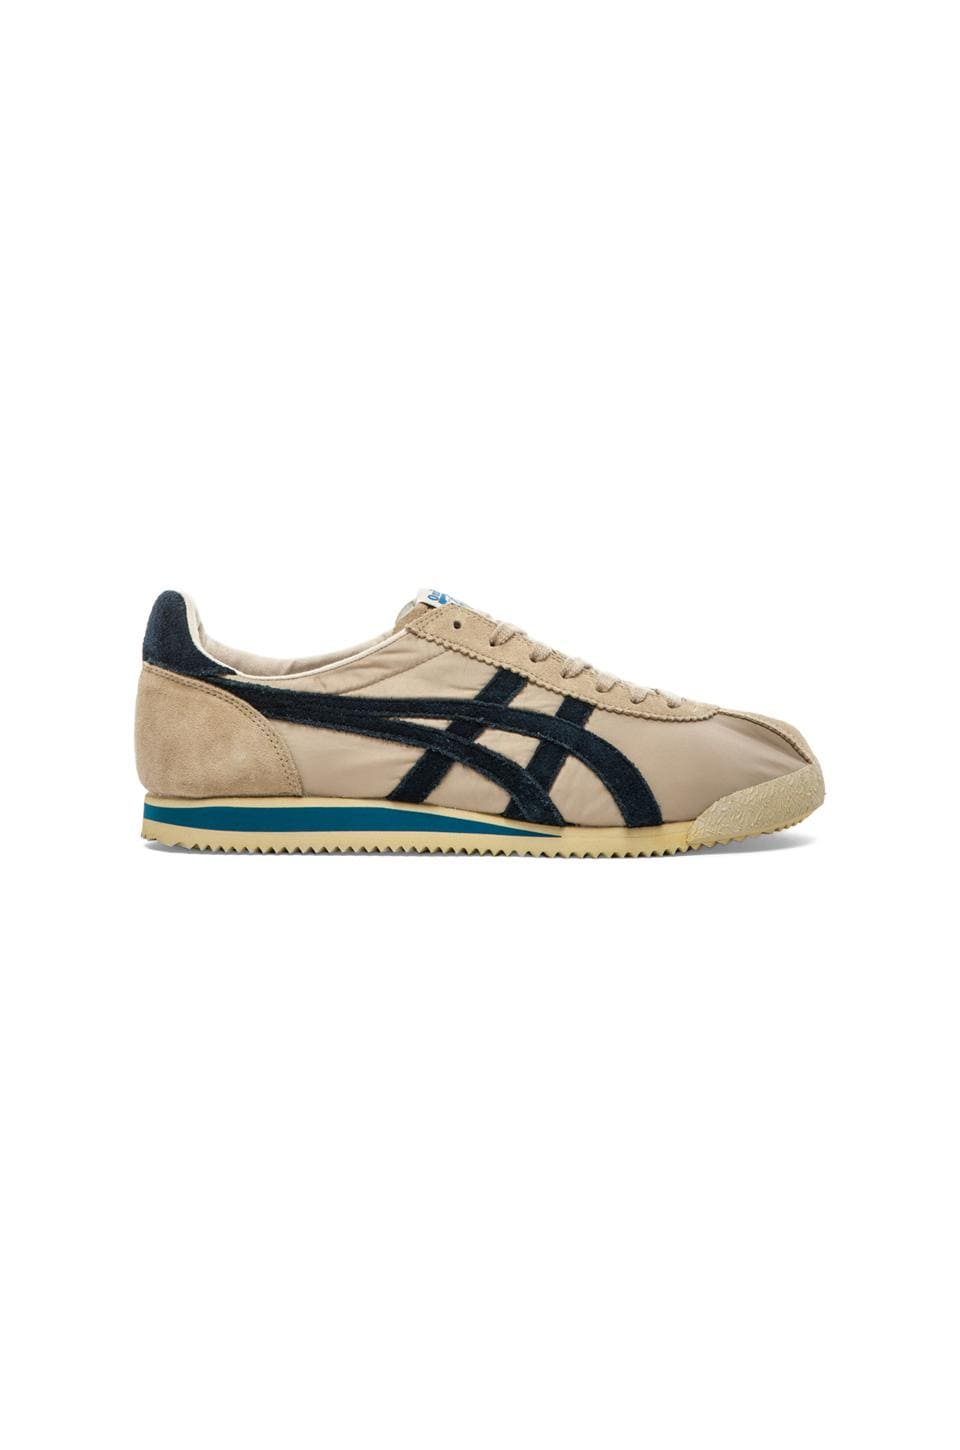 new concept 101a0 33b70 Onitsuka Tiger Corsair Vin in Sand & Navy | REVOLVE